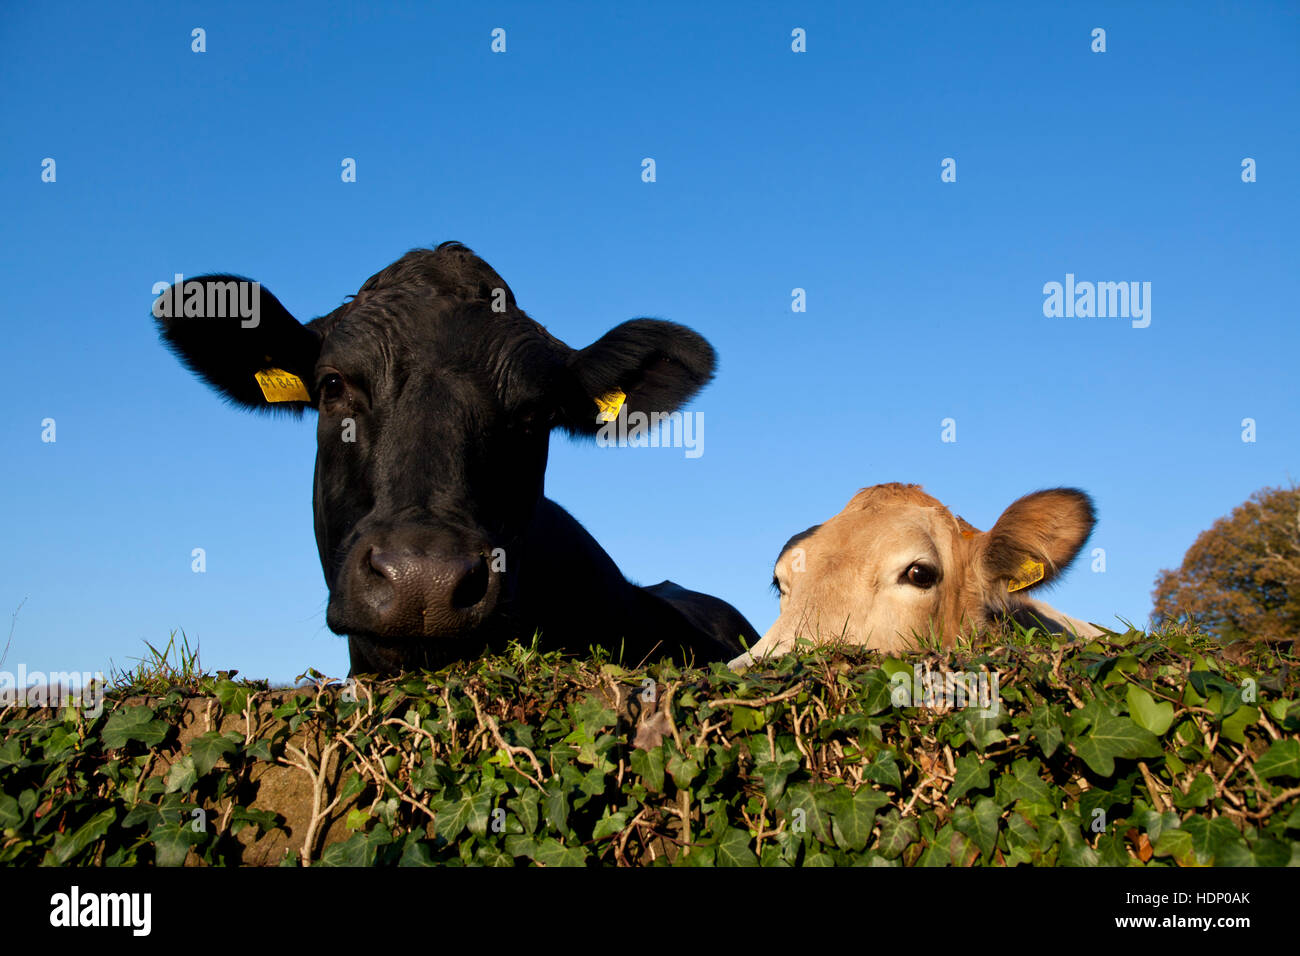 Europe, Germany, North Rhine-Westphalia, Herdecke, cows are looking over an ivy covered wall. Stock Photo